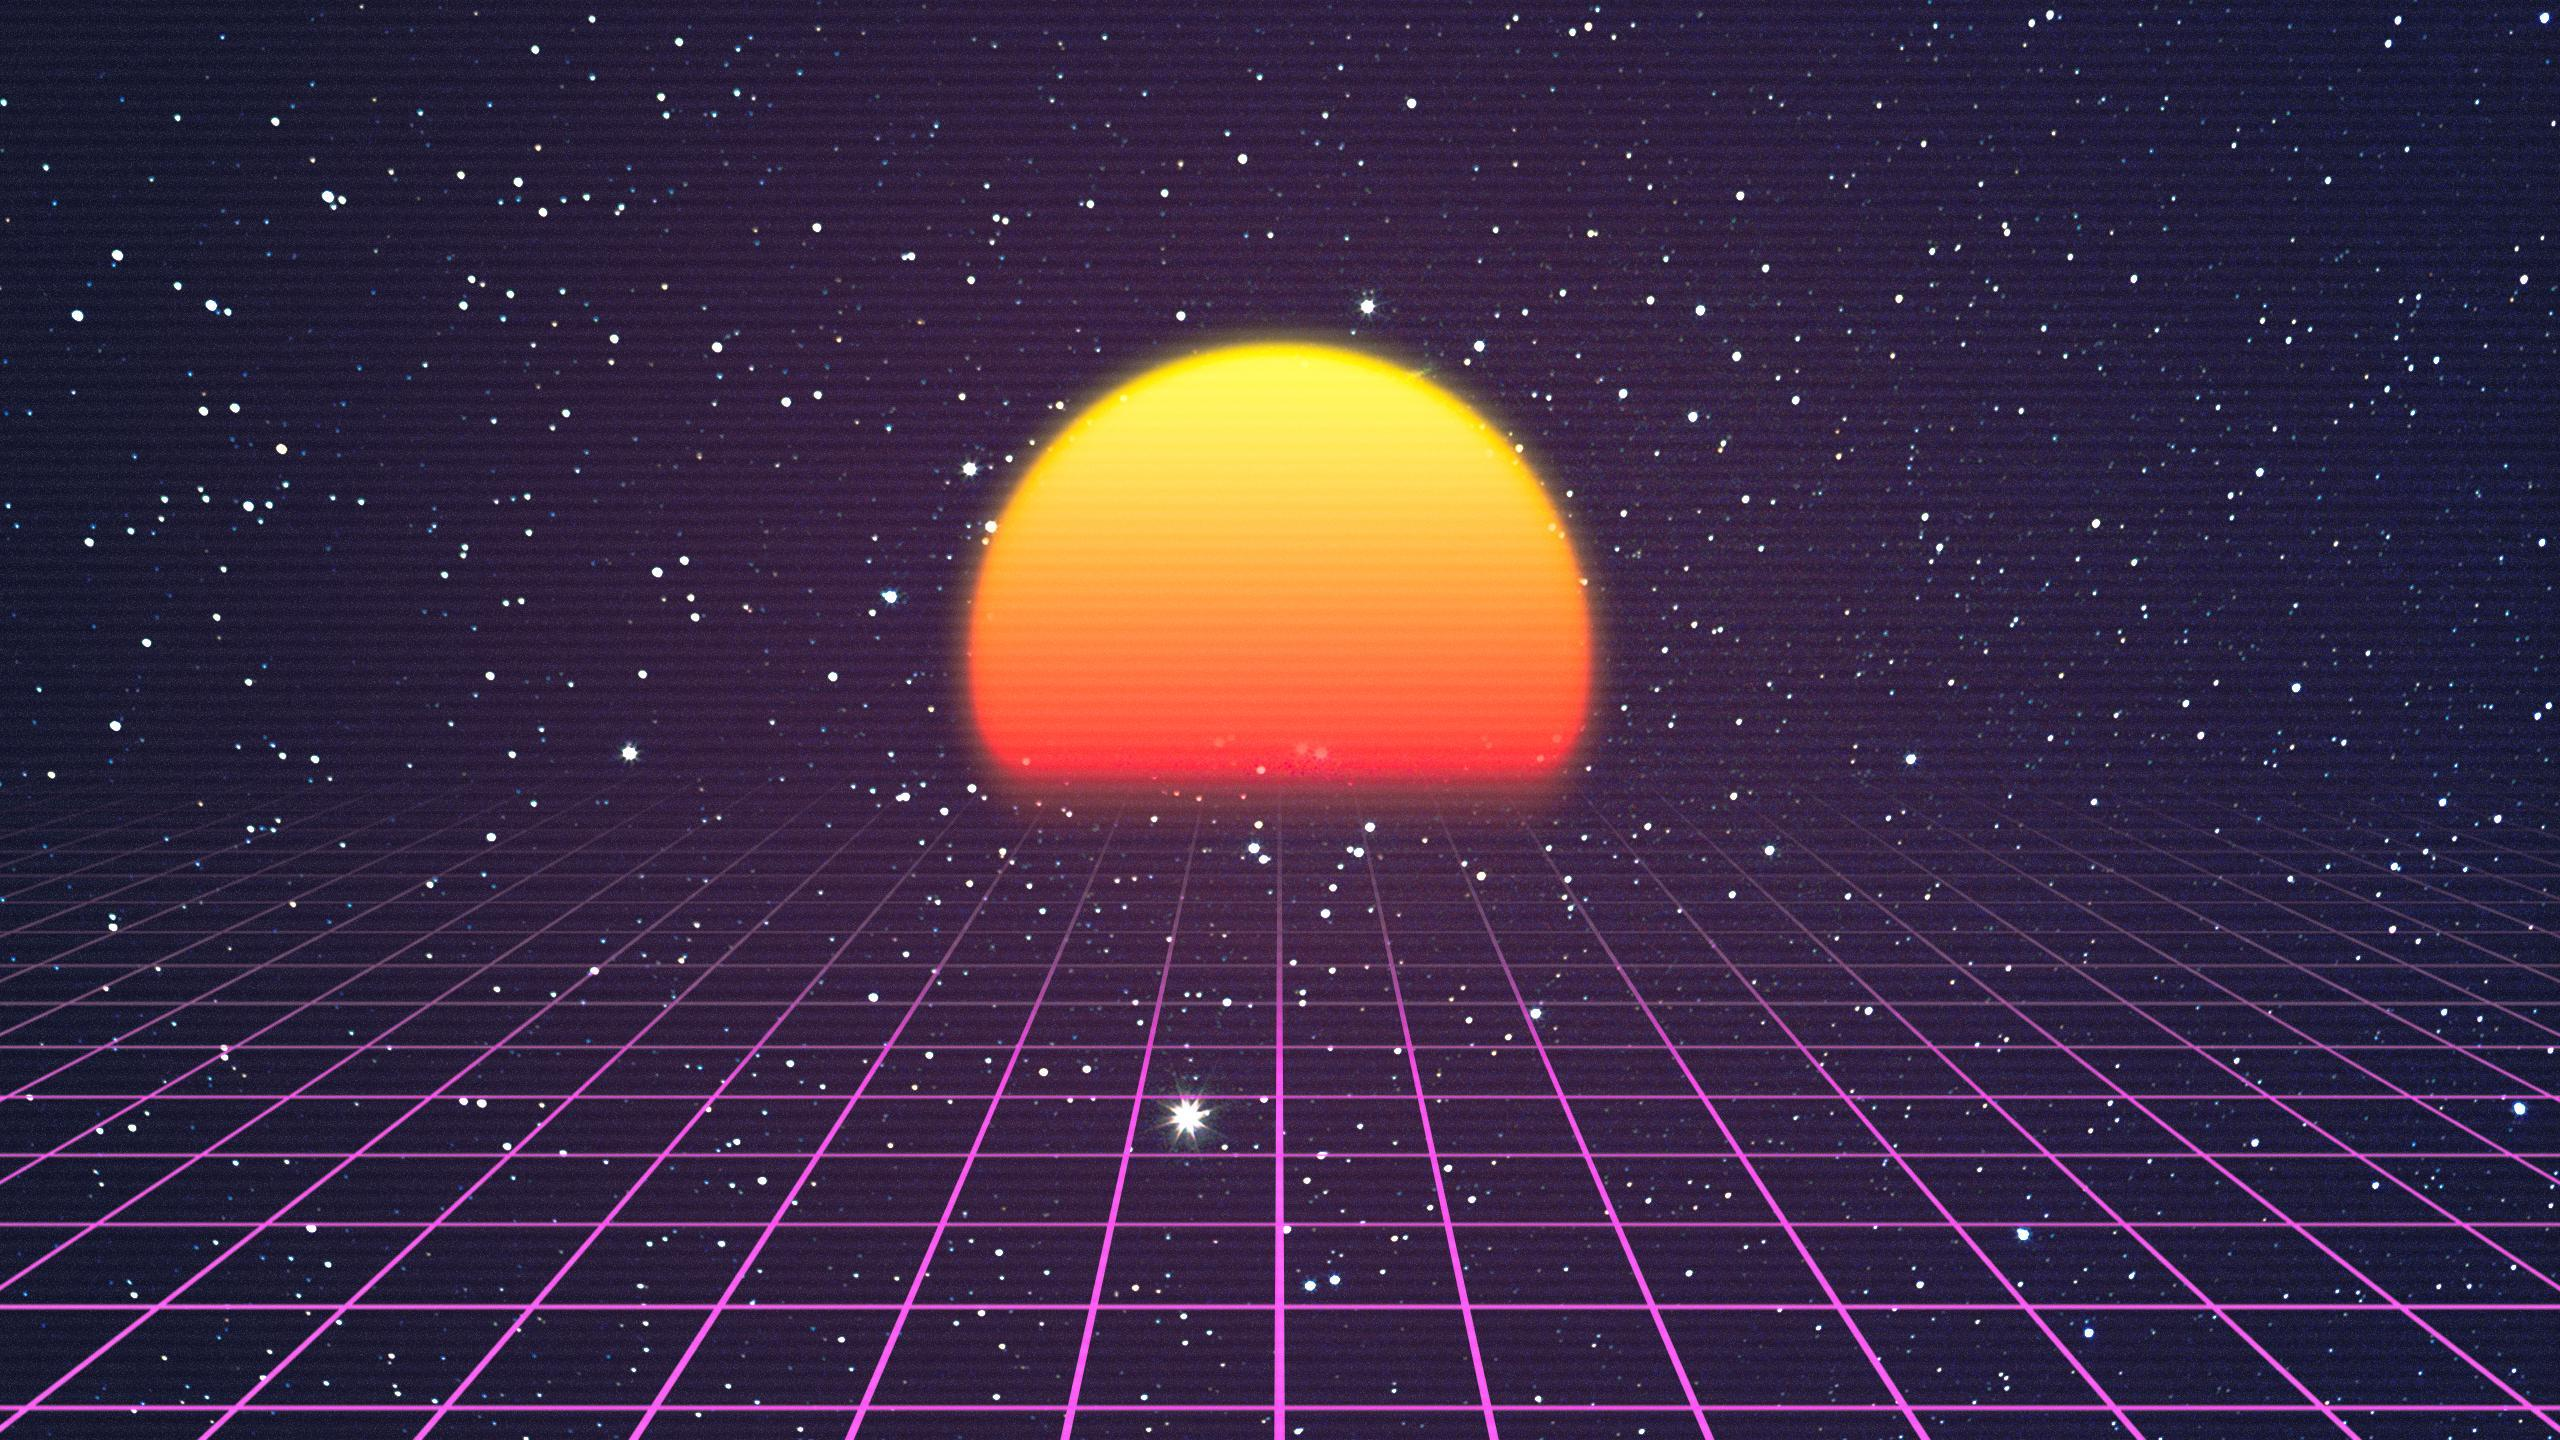 119 Retro Wave HD Wallpapers